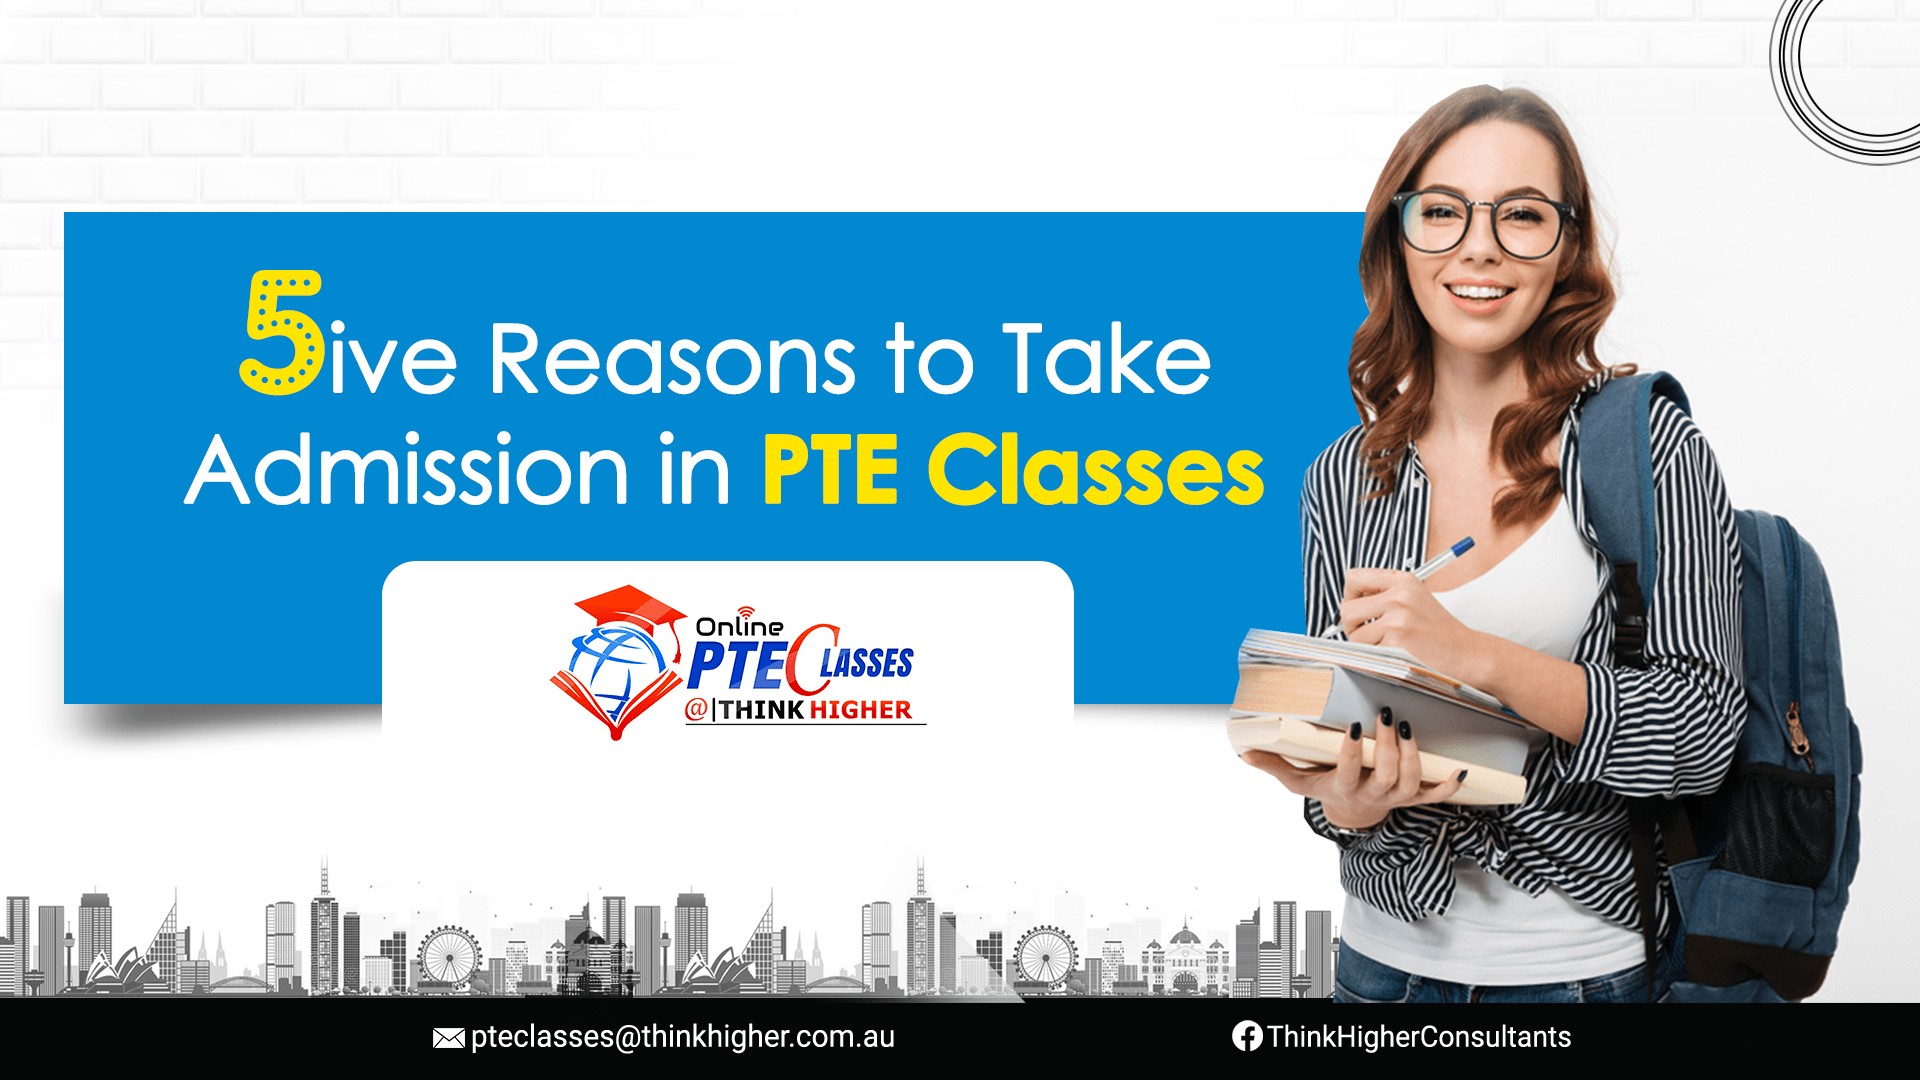 Five Reasons to Take Admission in PTE